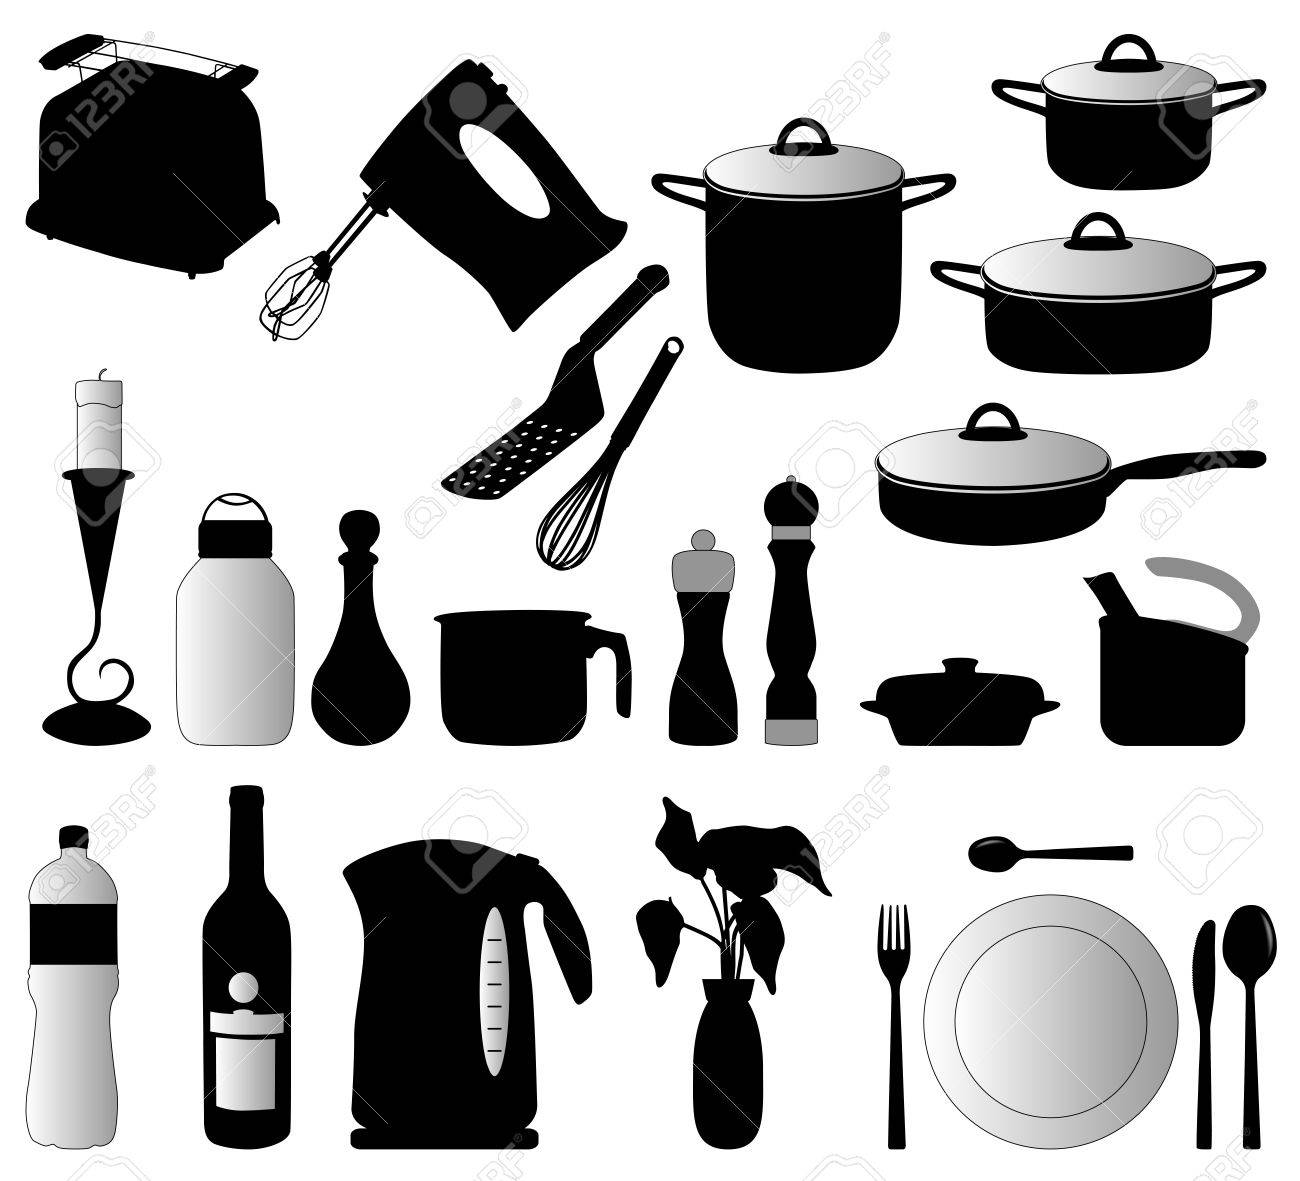 Dishes, Pan, Mixer And Other Kitchen Objects Silhouette Vector ...